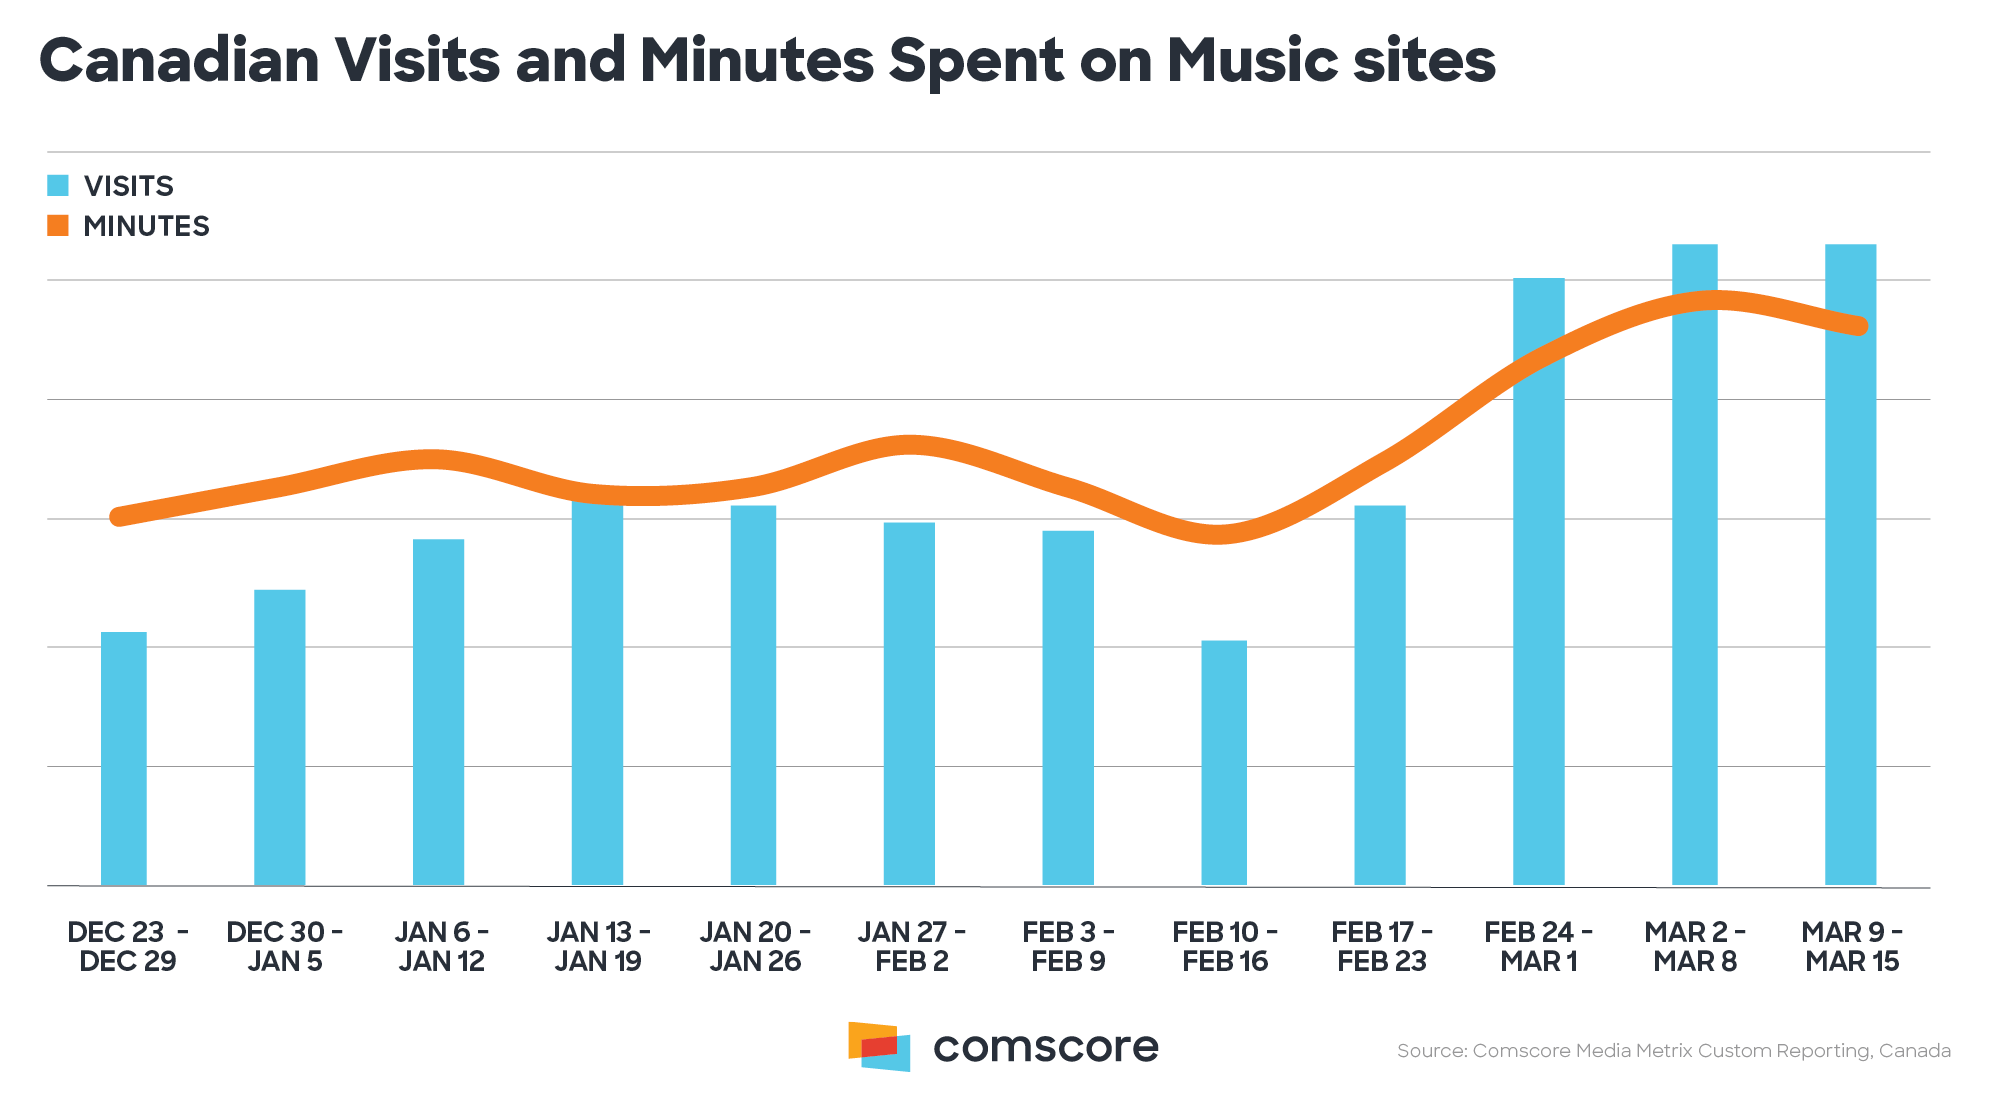 Canadian Visits and Minutes Spent on Music sites